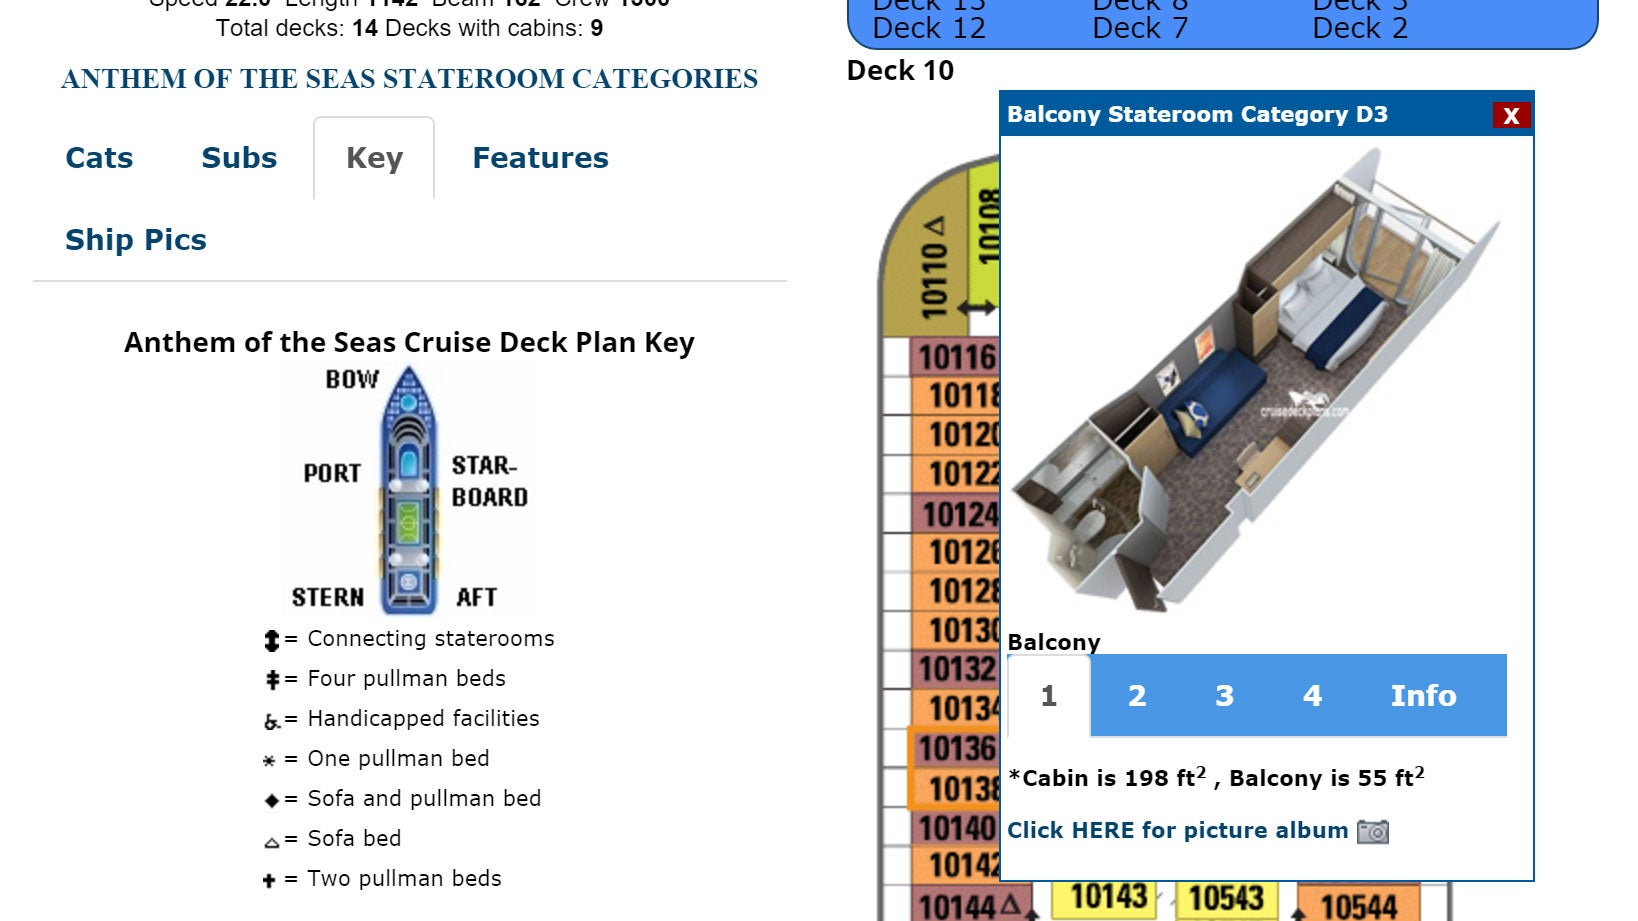 Cruisedeckplans Helps You Choose the Best Cabin for Your Cruise